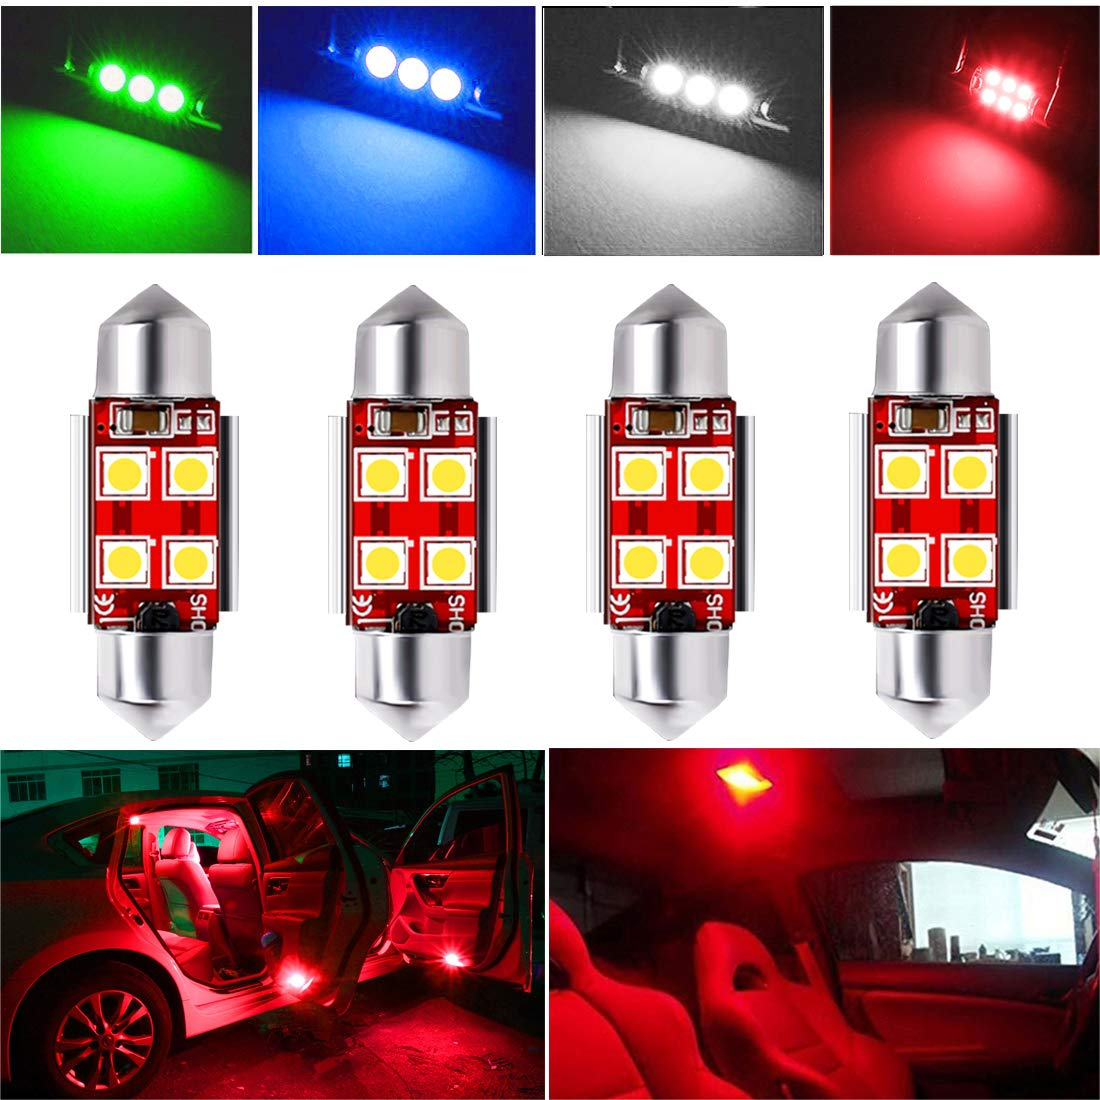 Green iBrightstar Newest 9-30V Extremely Bright DE3175 DE3021 Festoon Error Free 1.25 31mm LED for Interior Map Dome Lights and License Plate Courtesy Lights